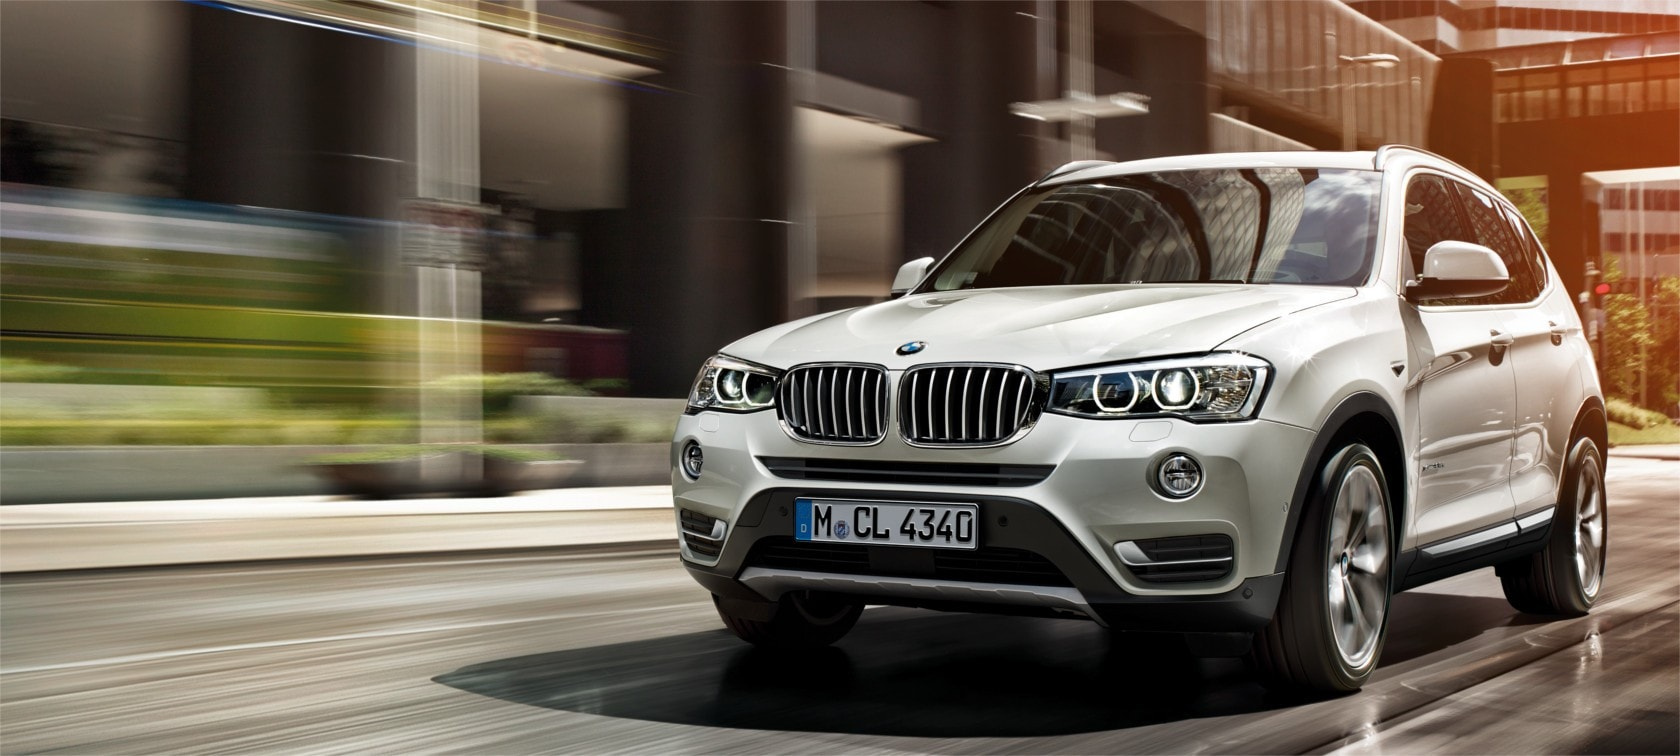 2019 Bmw X3 In Grapevine Tx Bmw Of Grapevine